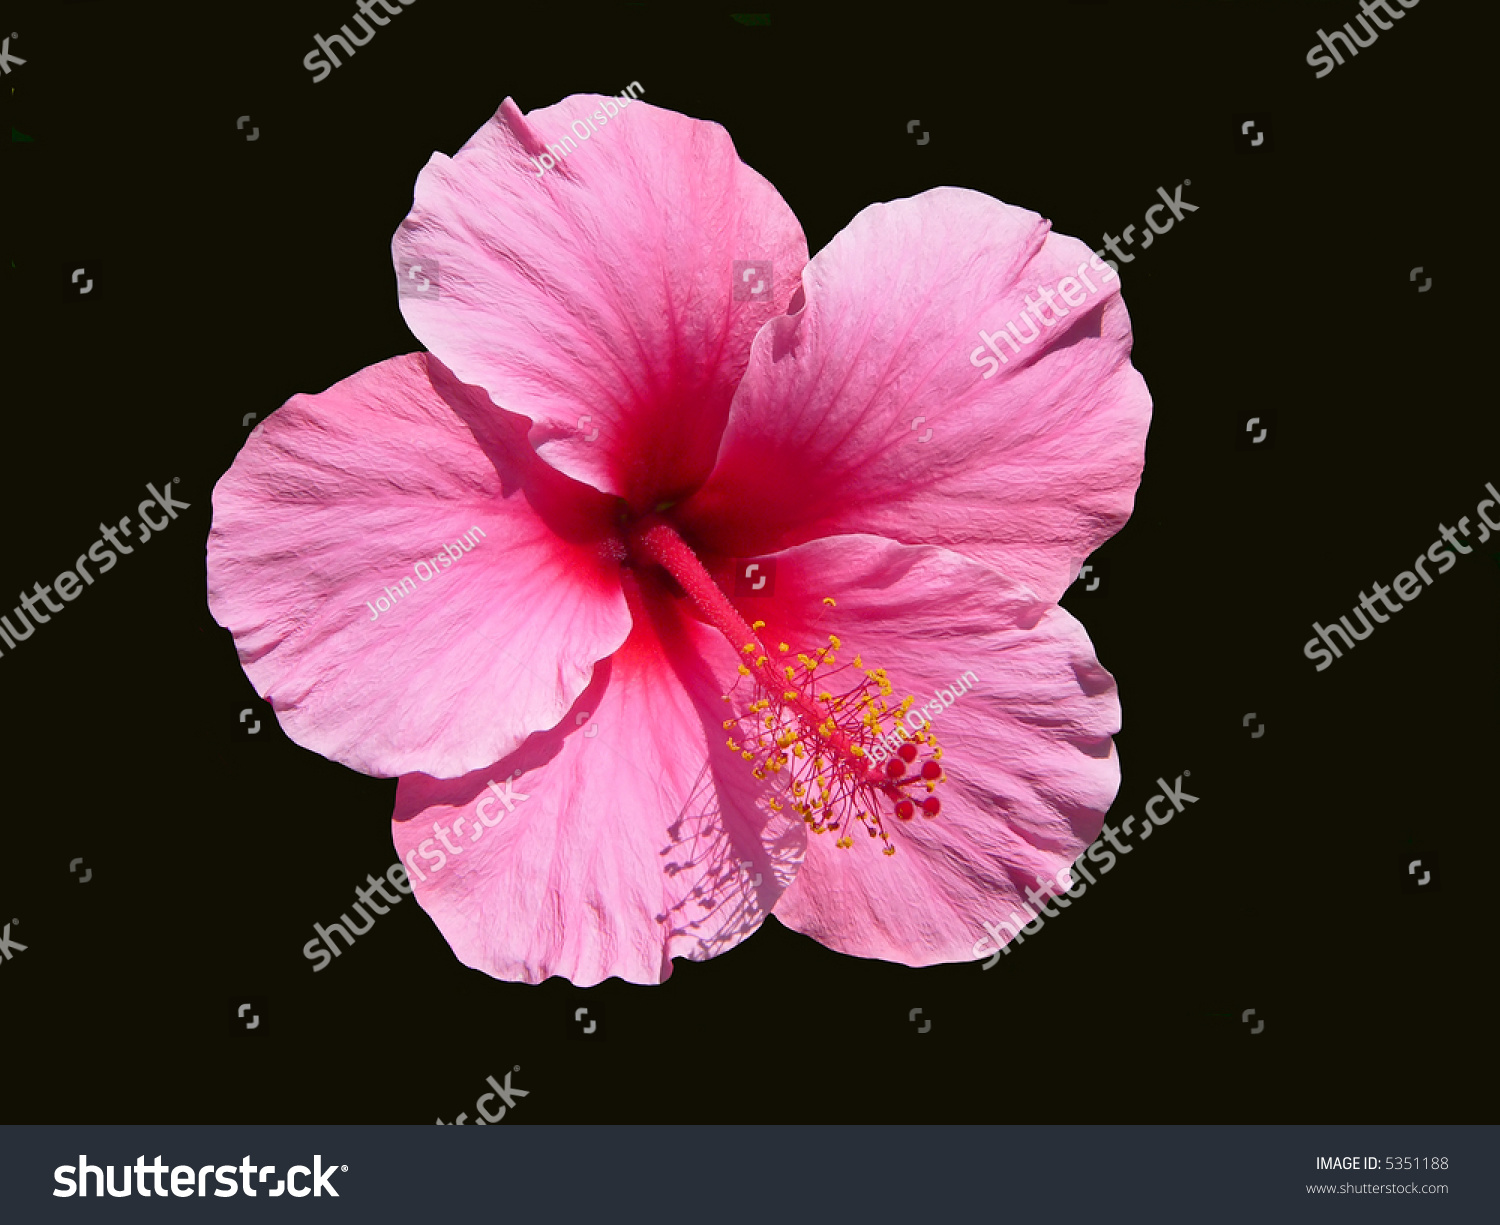 A Single Pink Hibiscus Blossom A Black Background Hawaii State Flower St